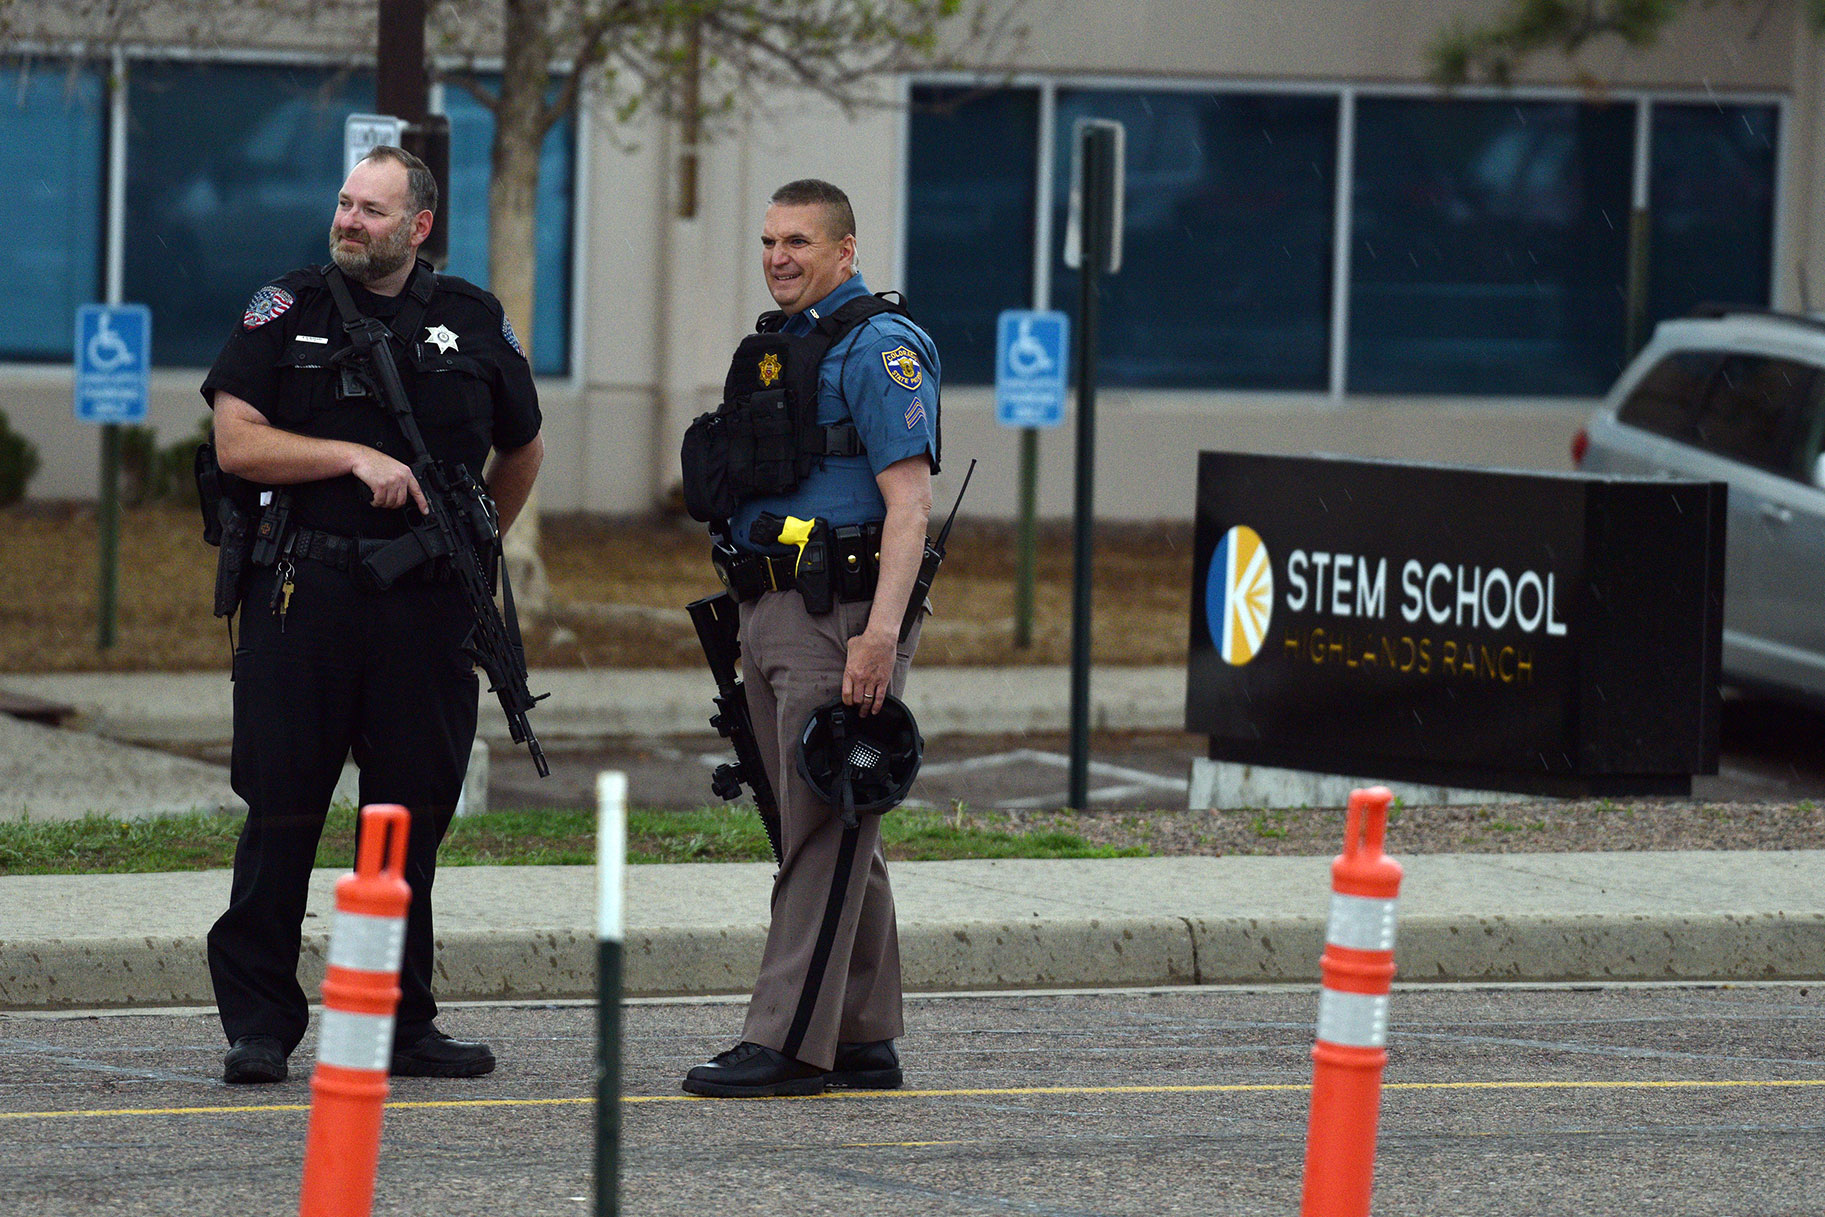 STEM school shooting